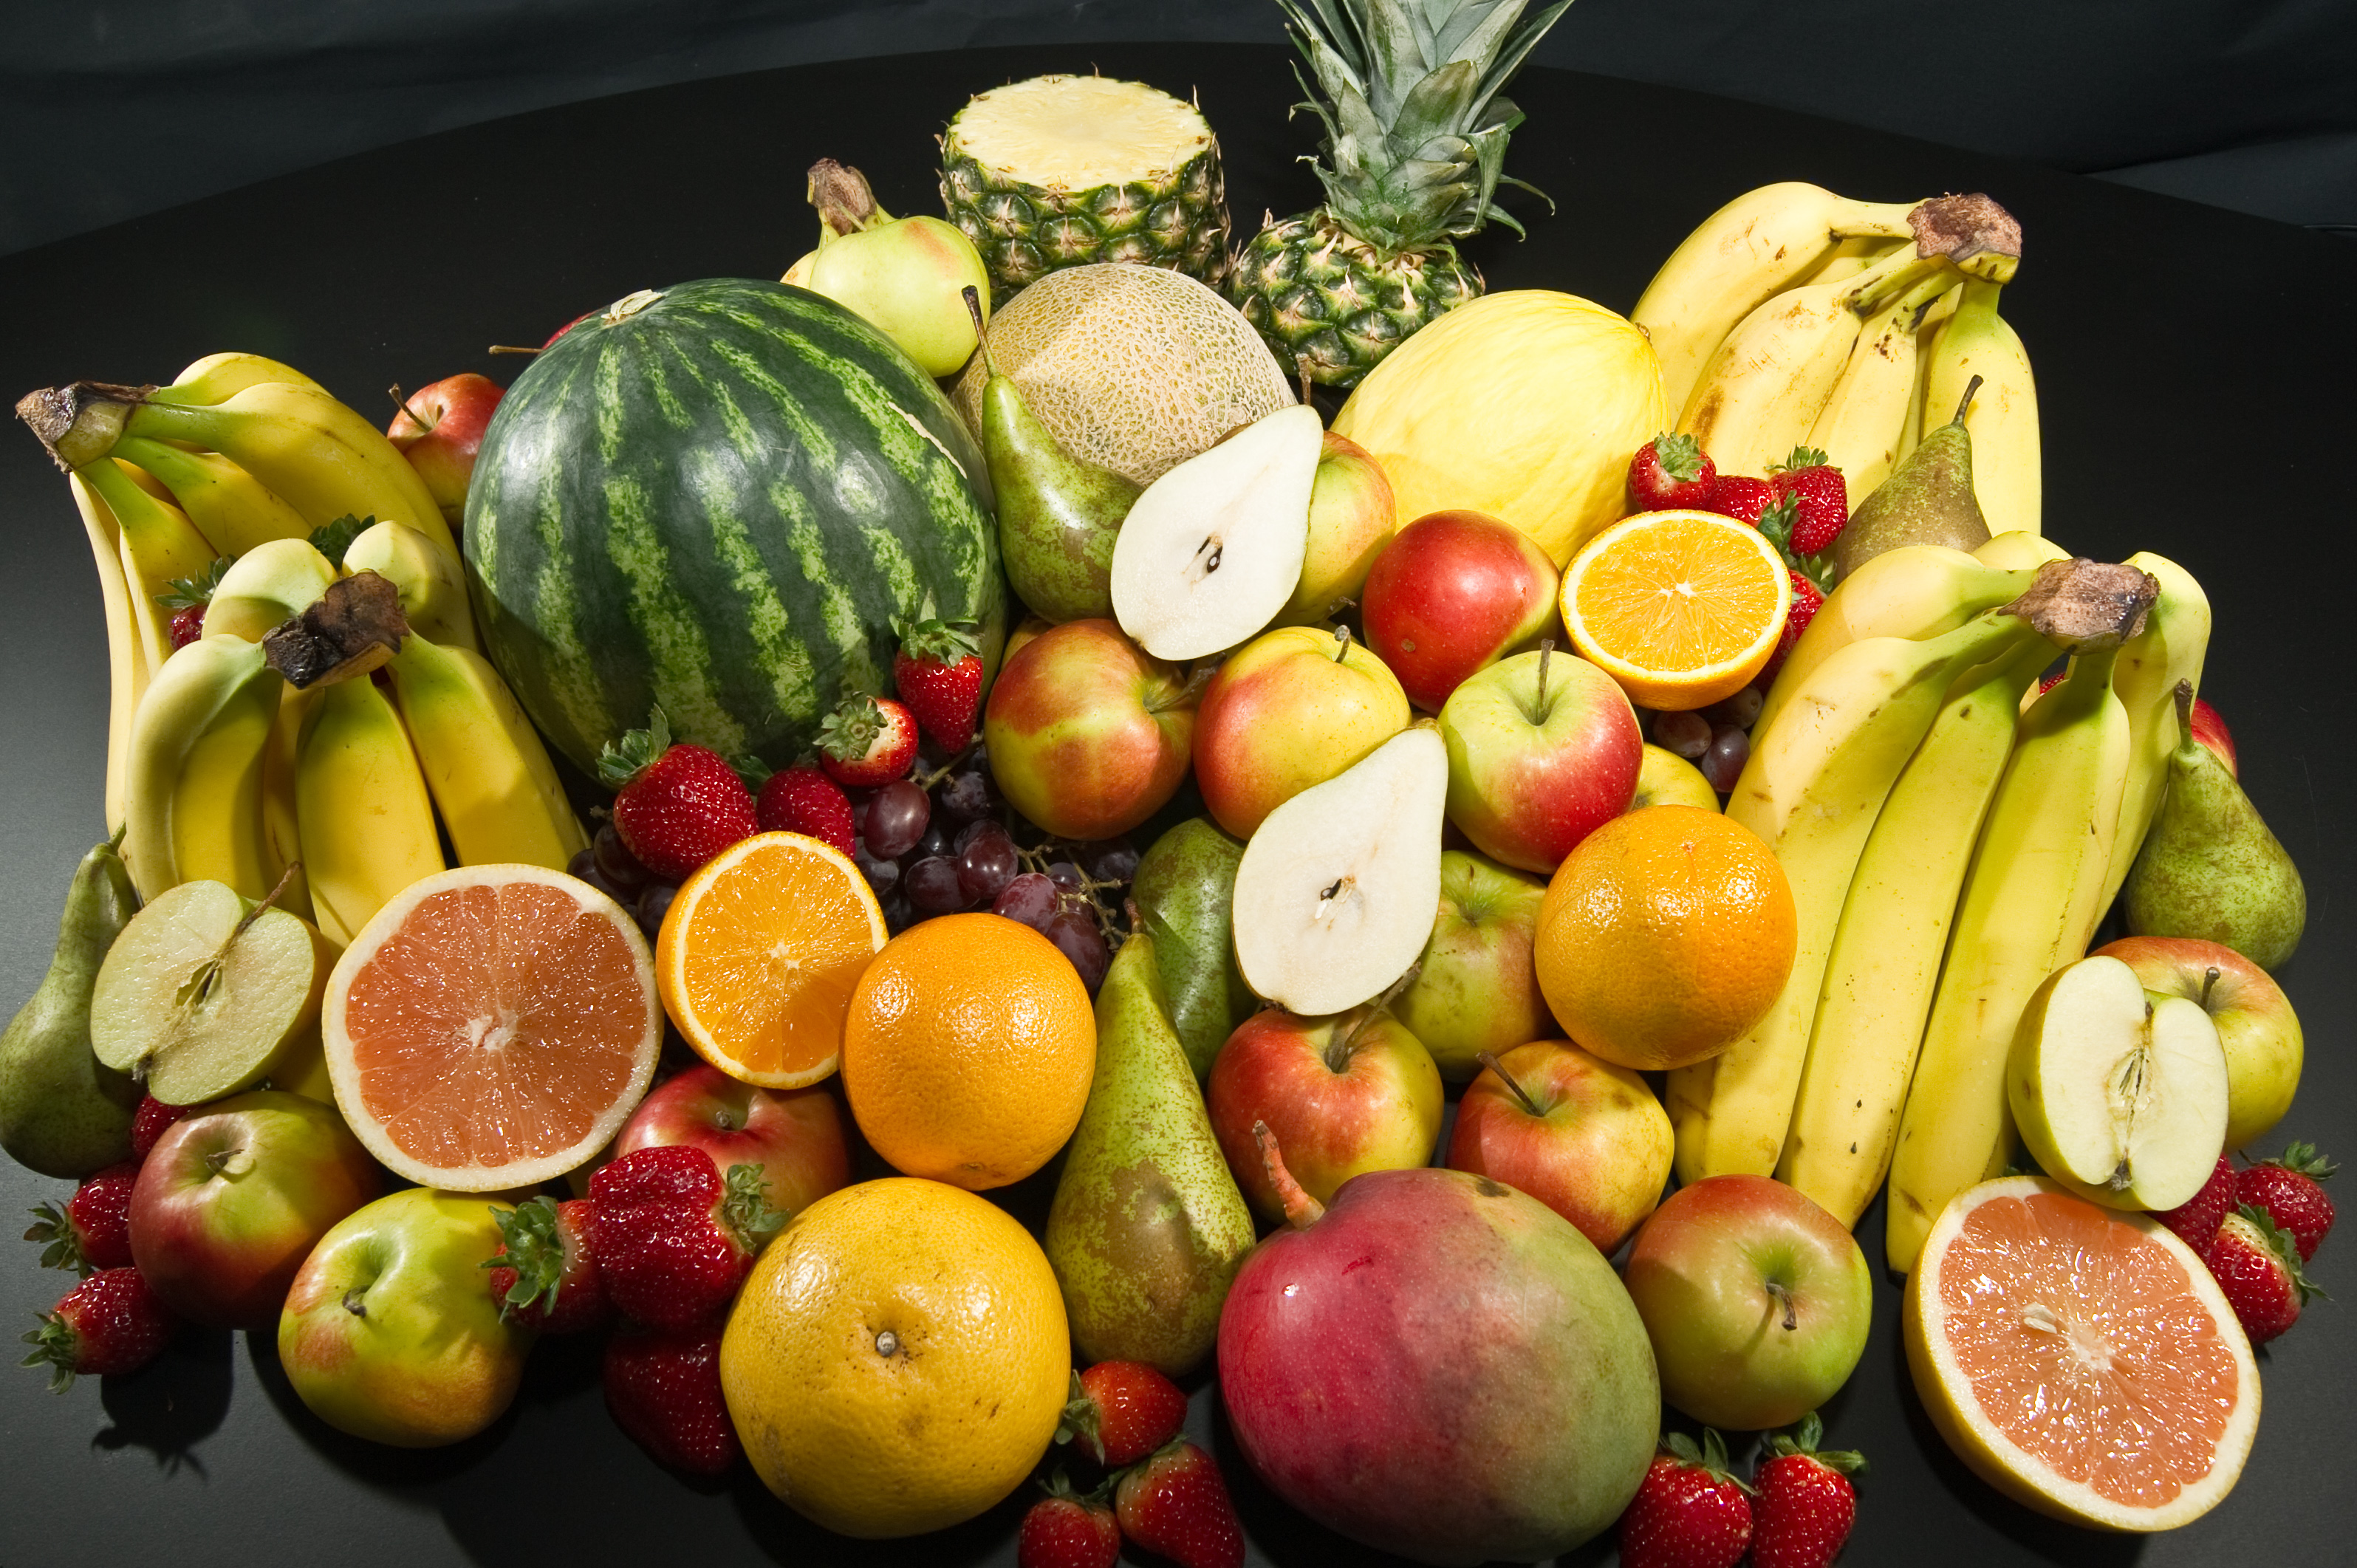 Healthy Food And Fruits For Pregnant